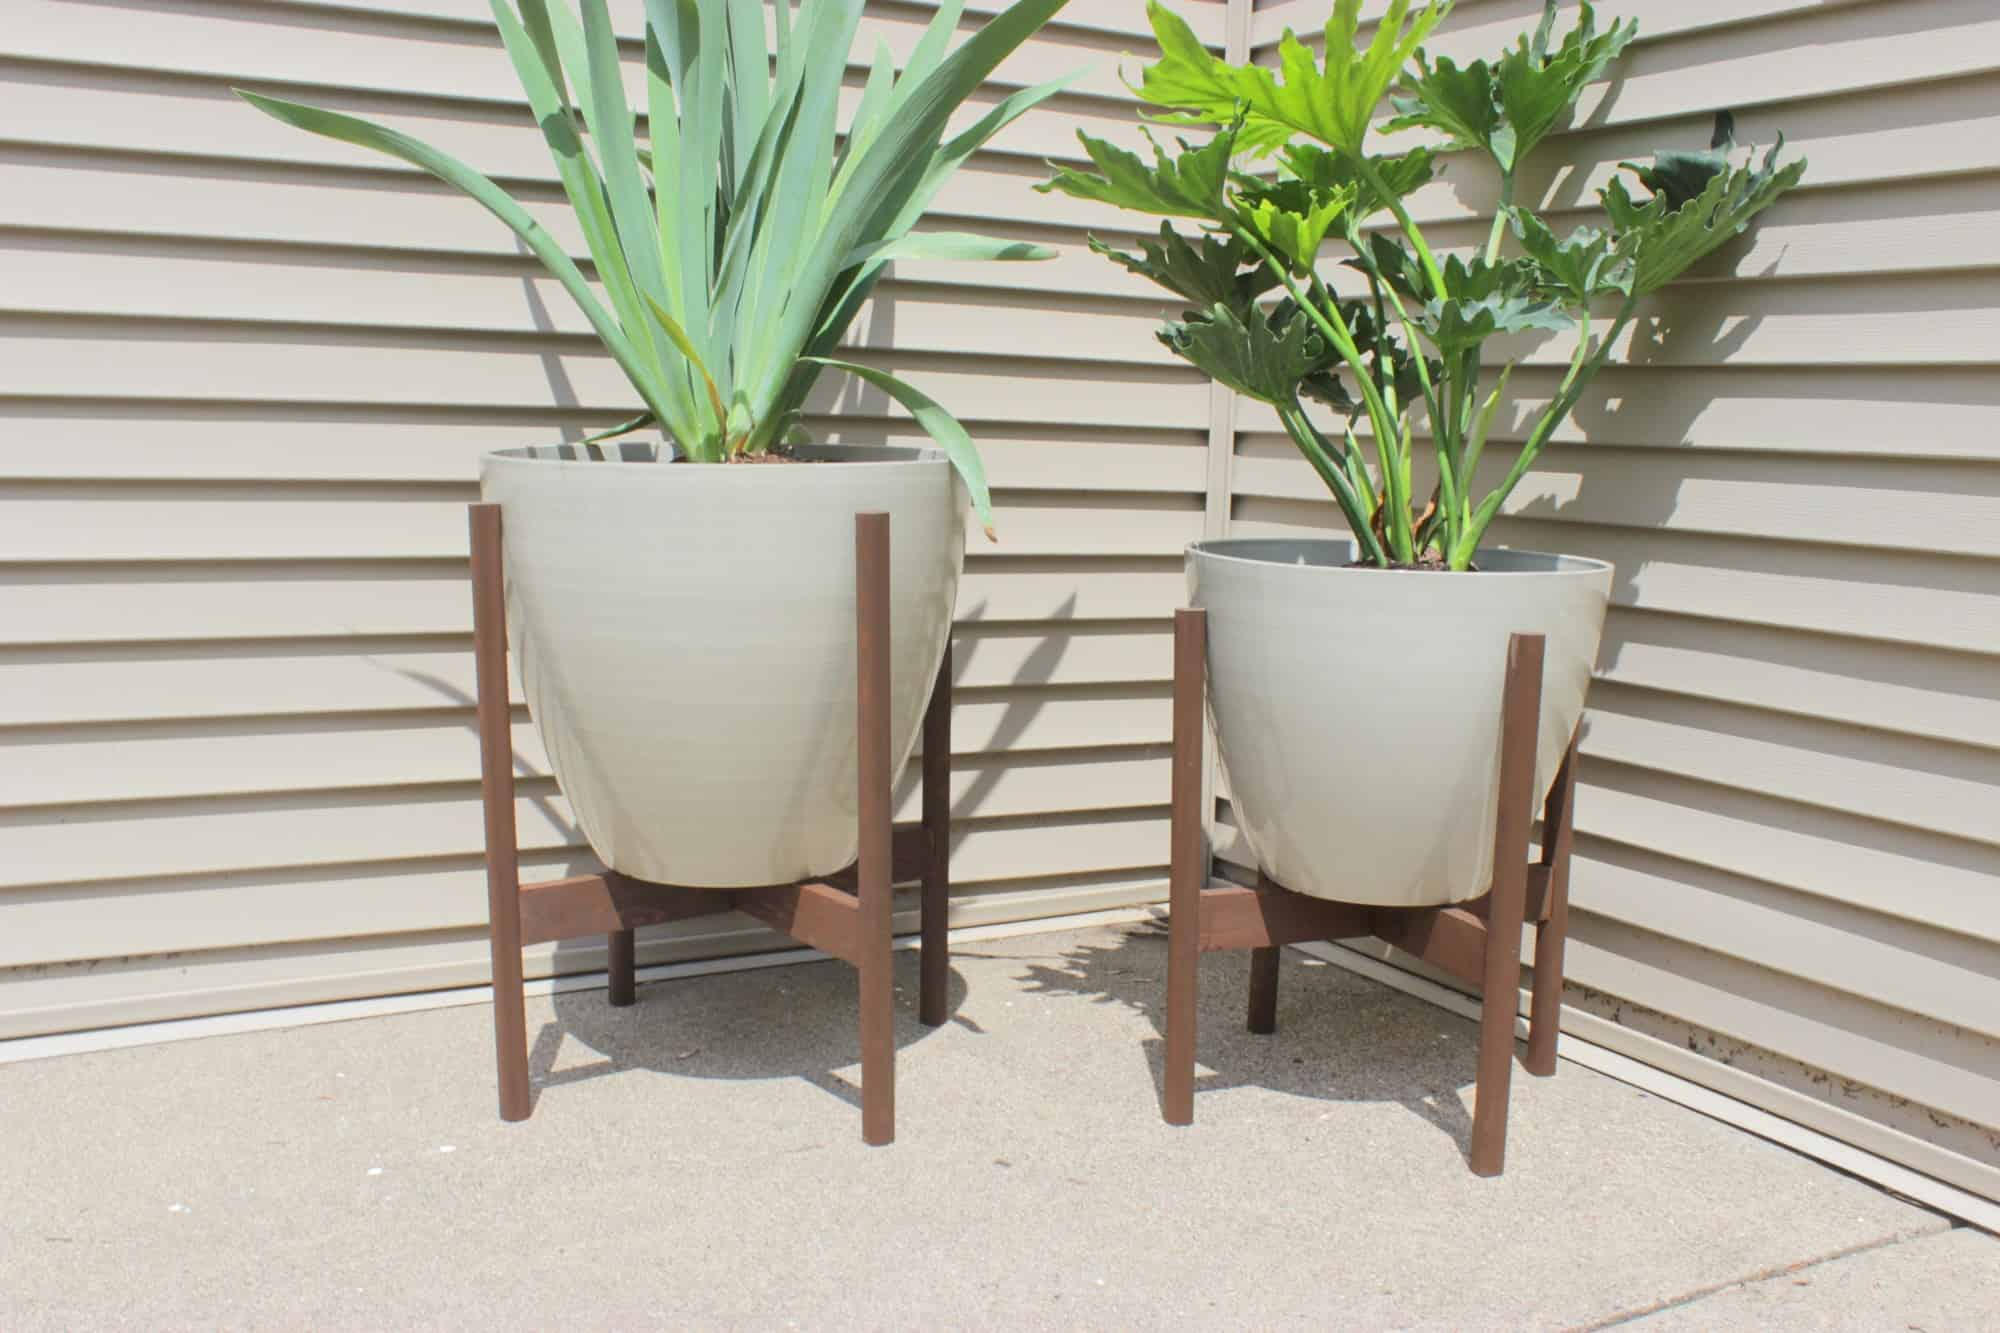 Diy modern planter stands